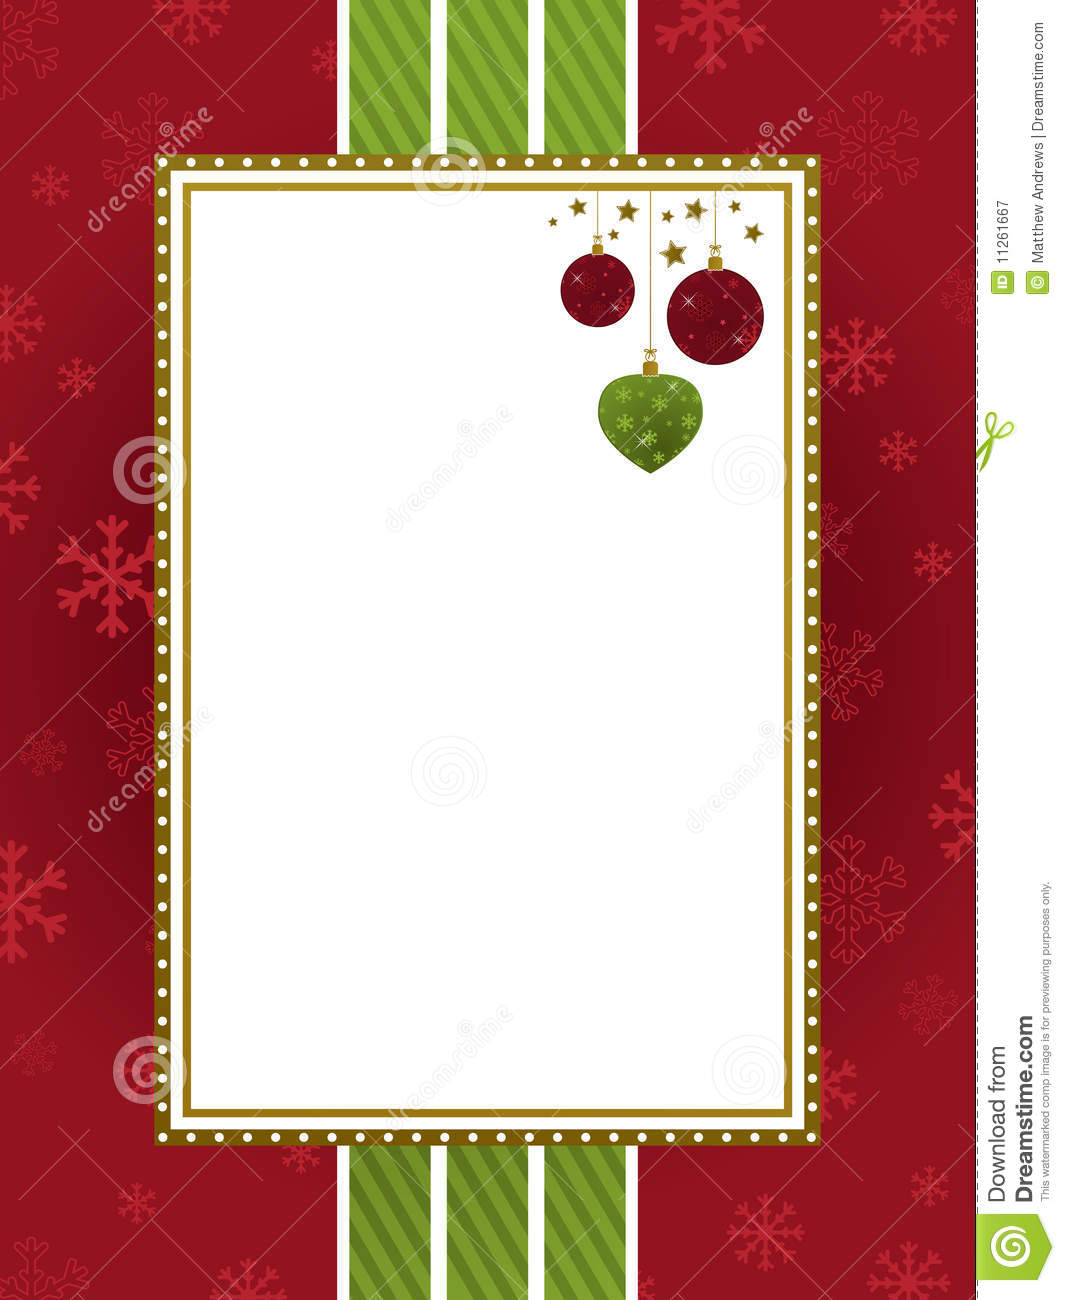 Green Christmas Ribbon Border